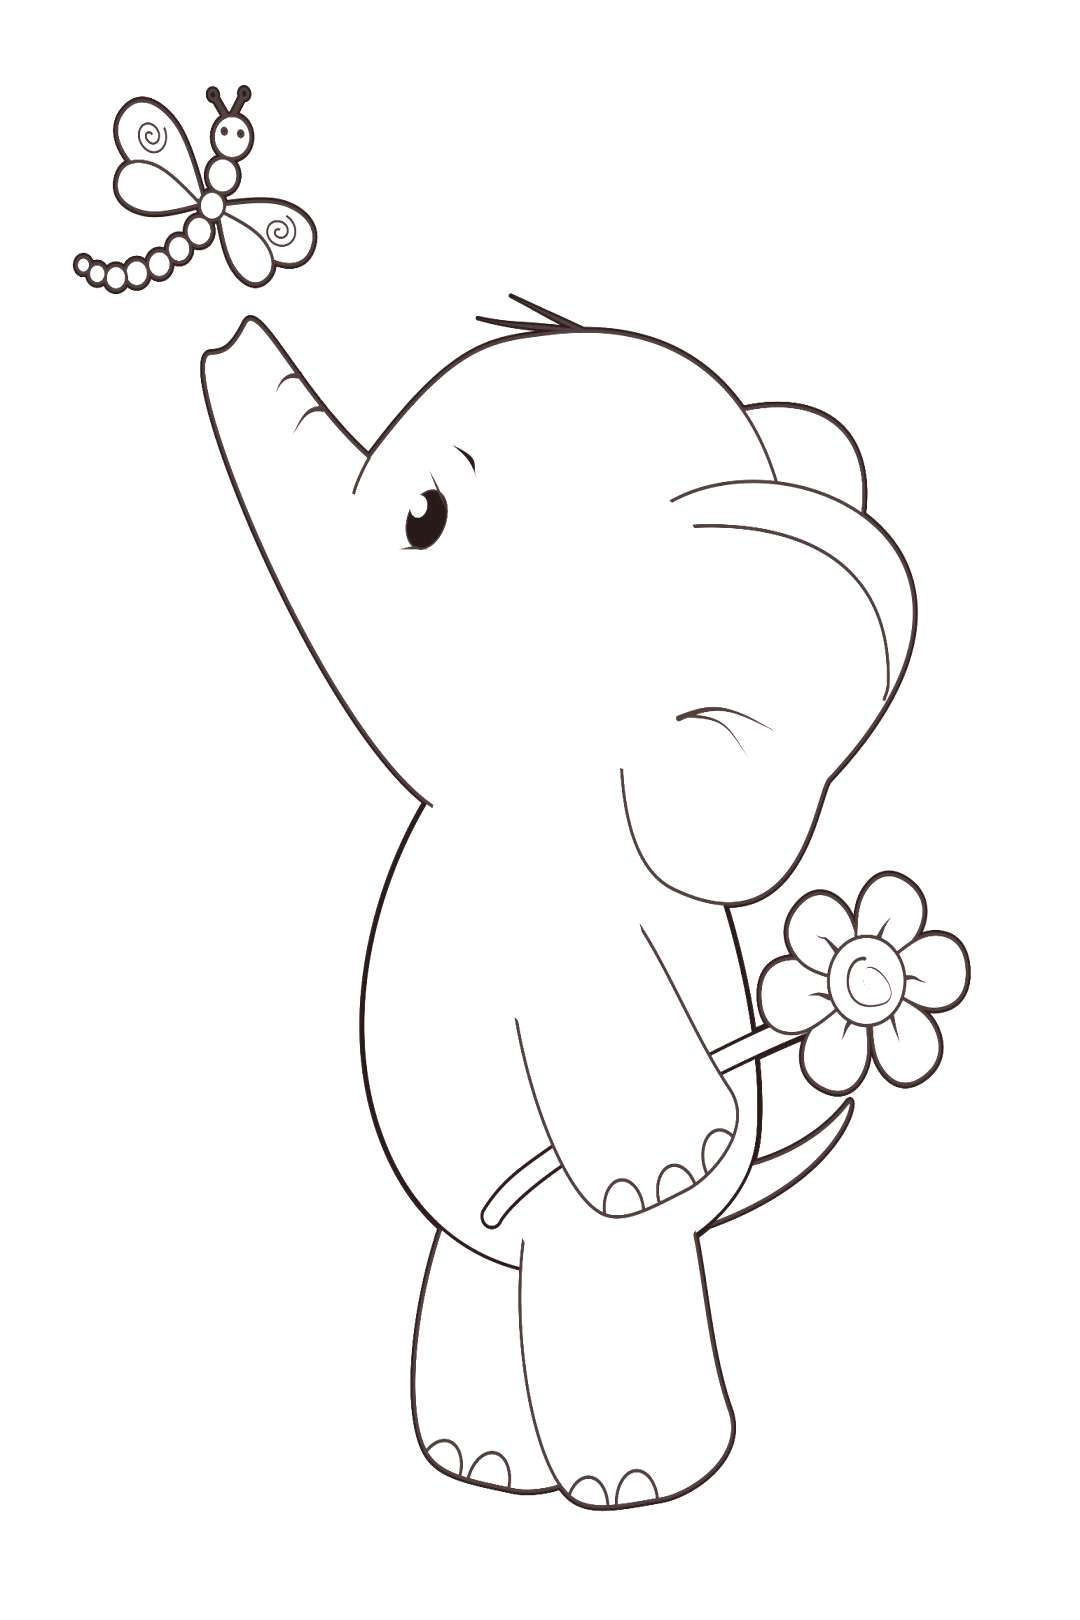 Free Digi Stamp! Ella with Dragonfly Cute Elephant - Simply Cards amp Papercraft magazine